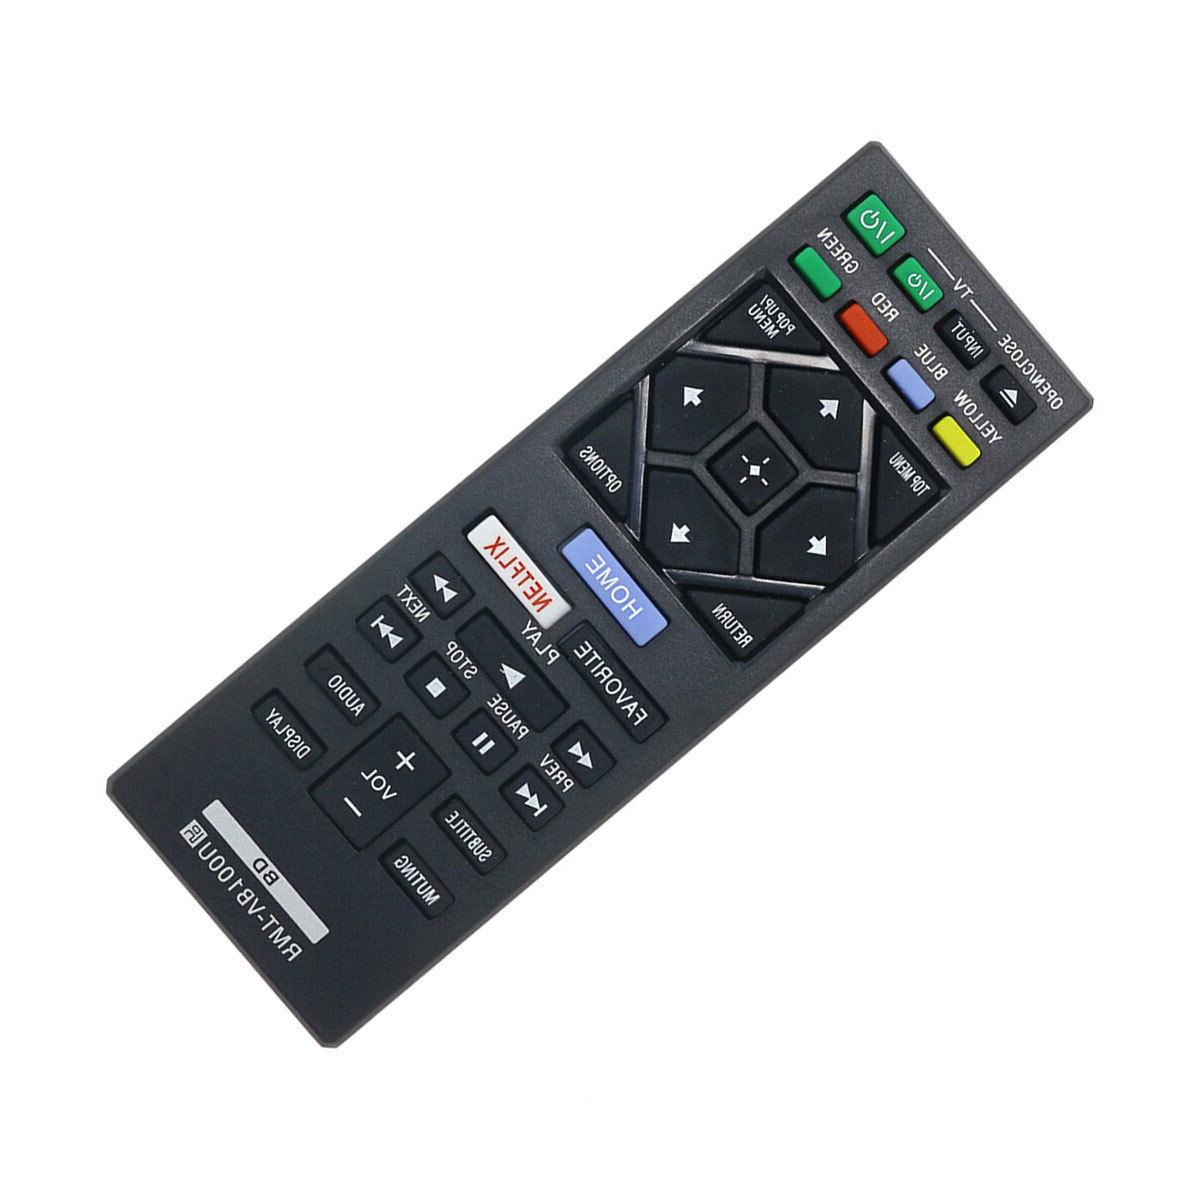 Generic Remote Control for Sony Blu-ray DVD Player BDPS3500